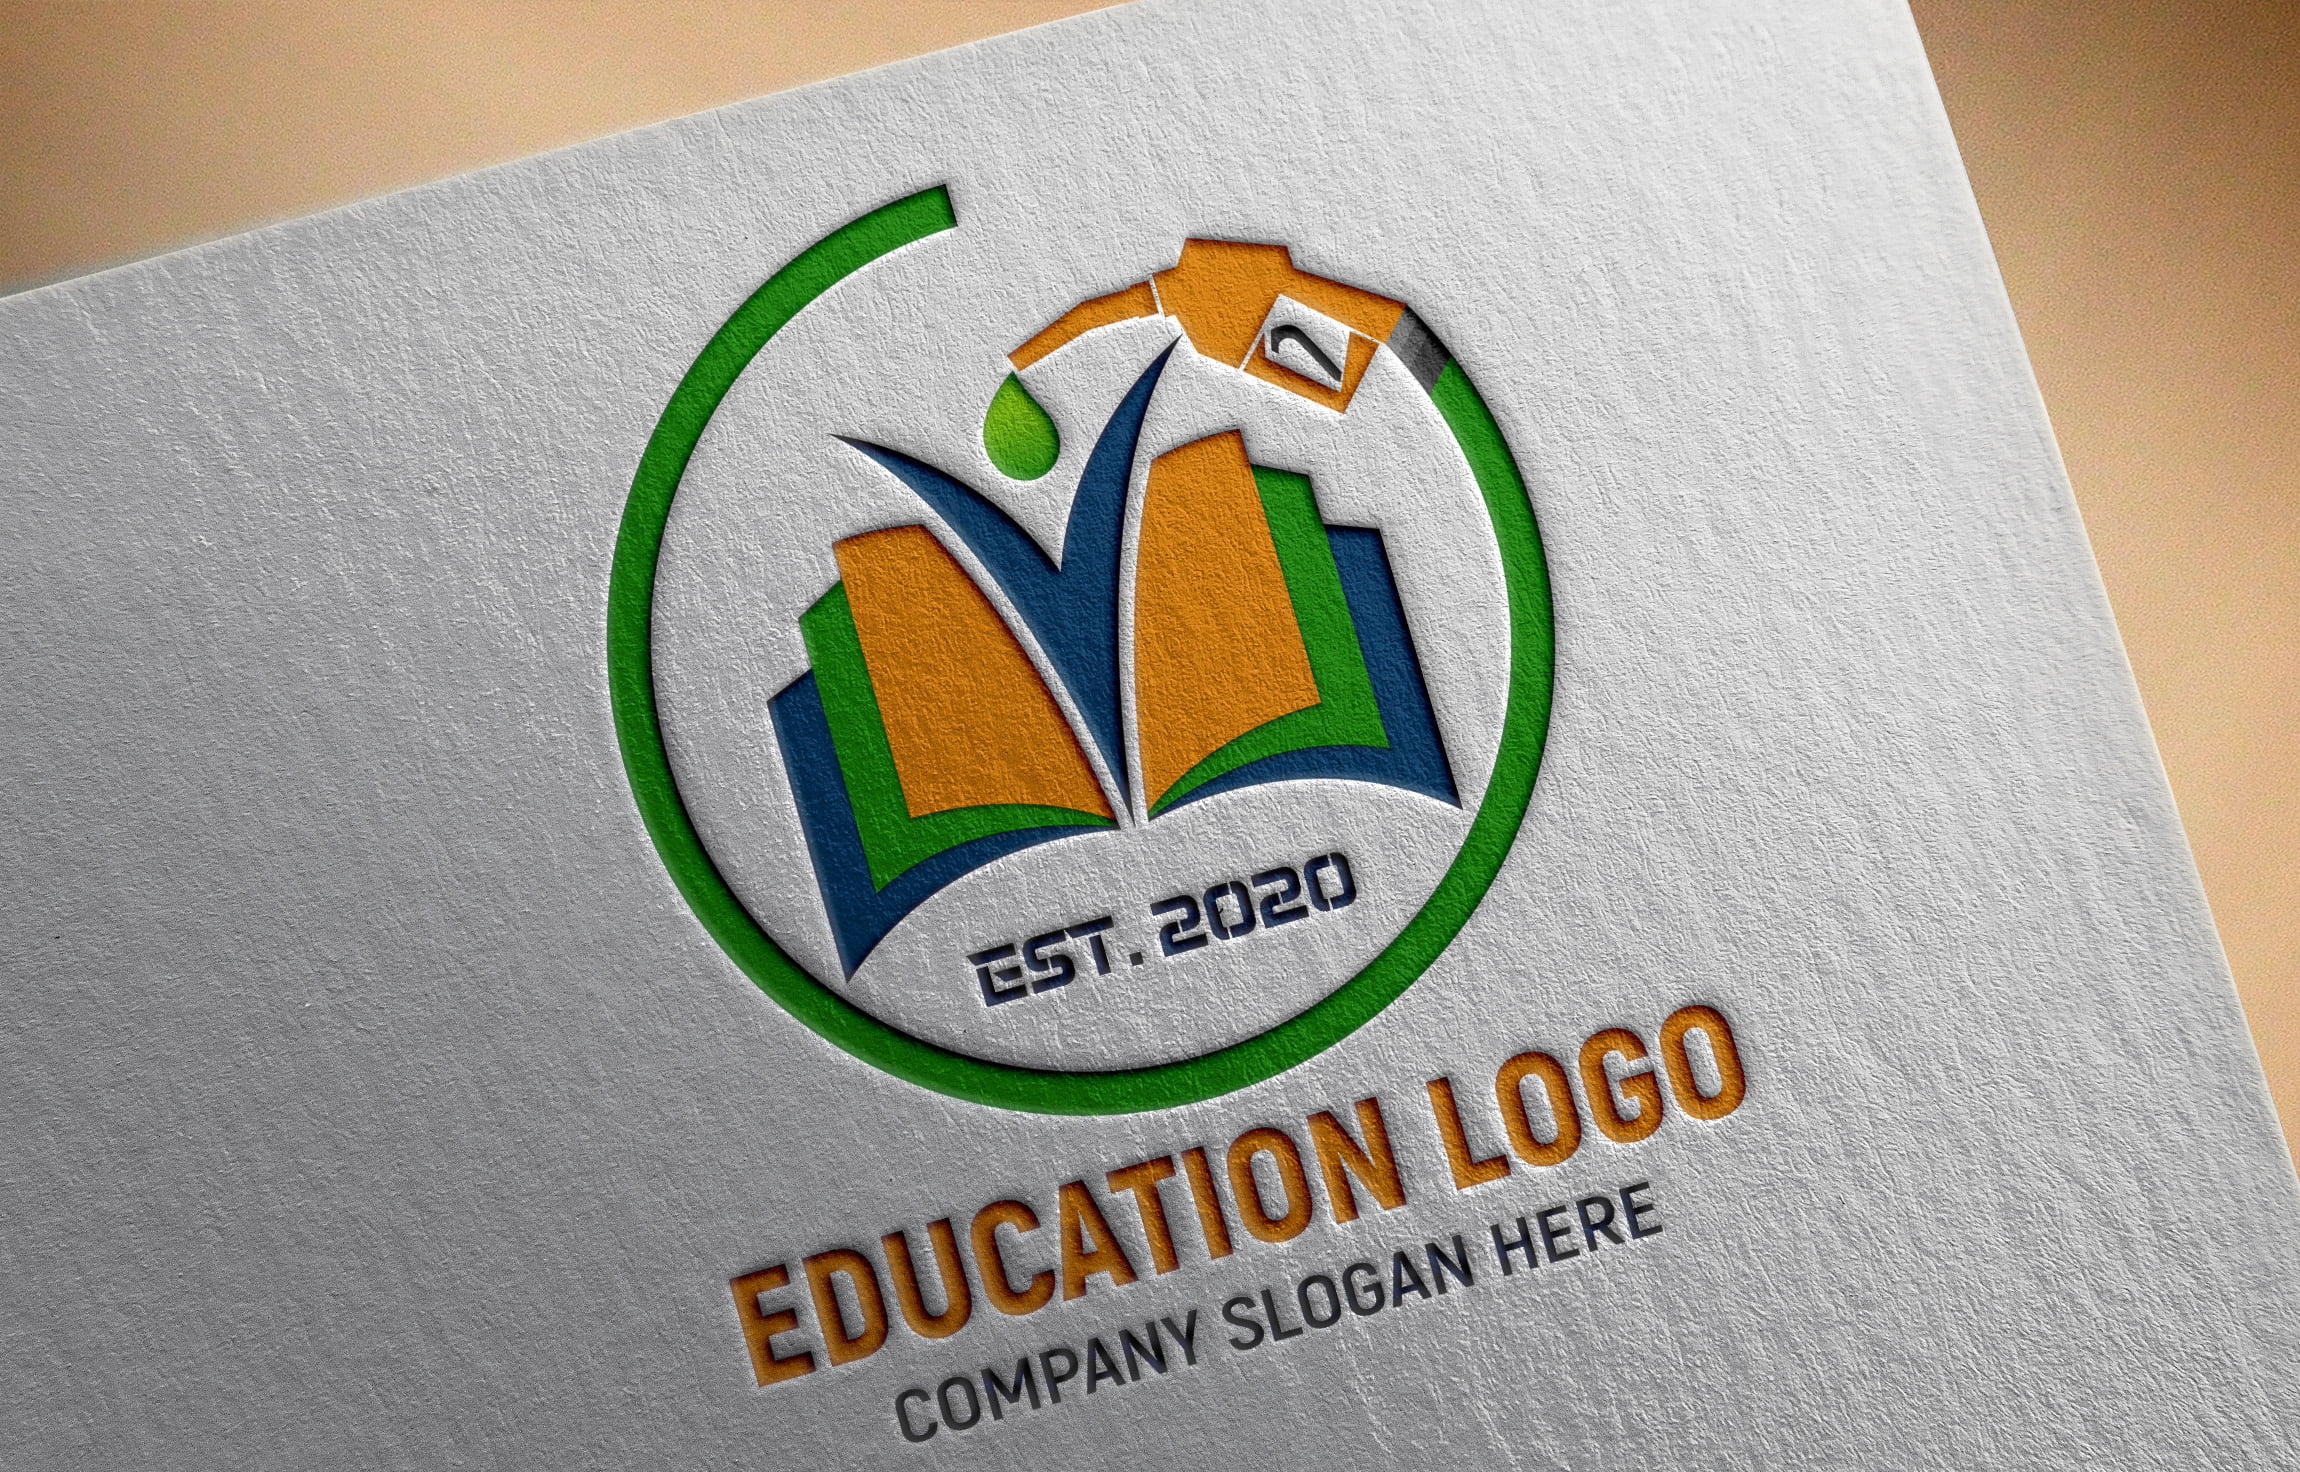 Fueling Education Logo on white paper